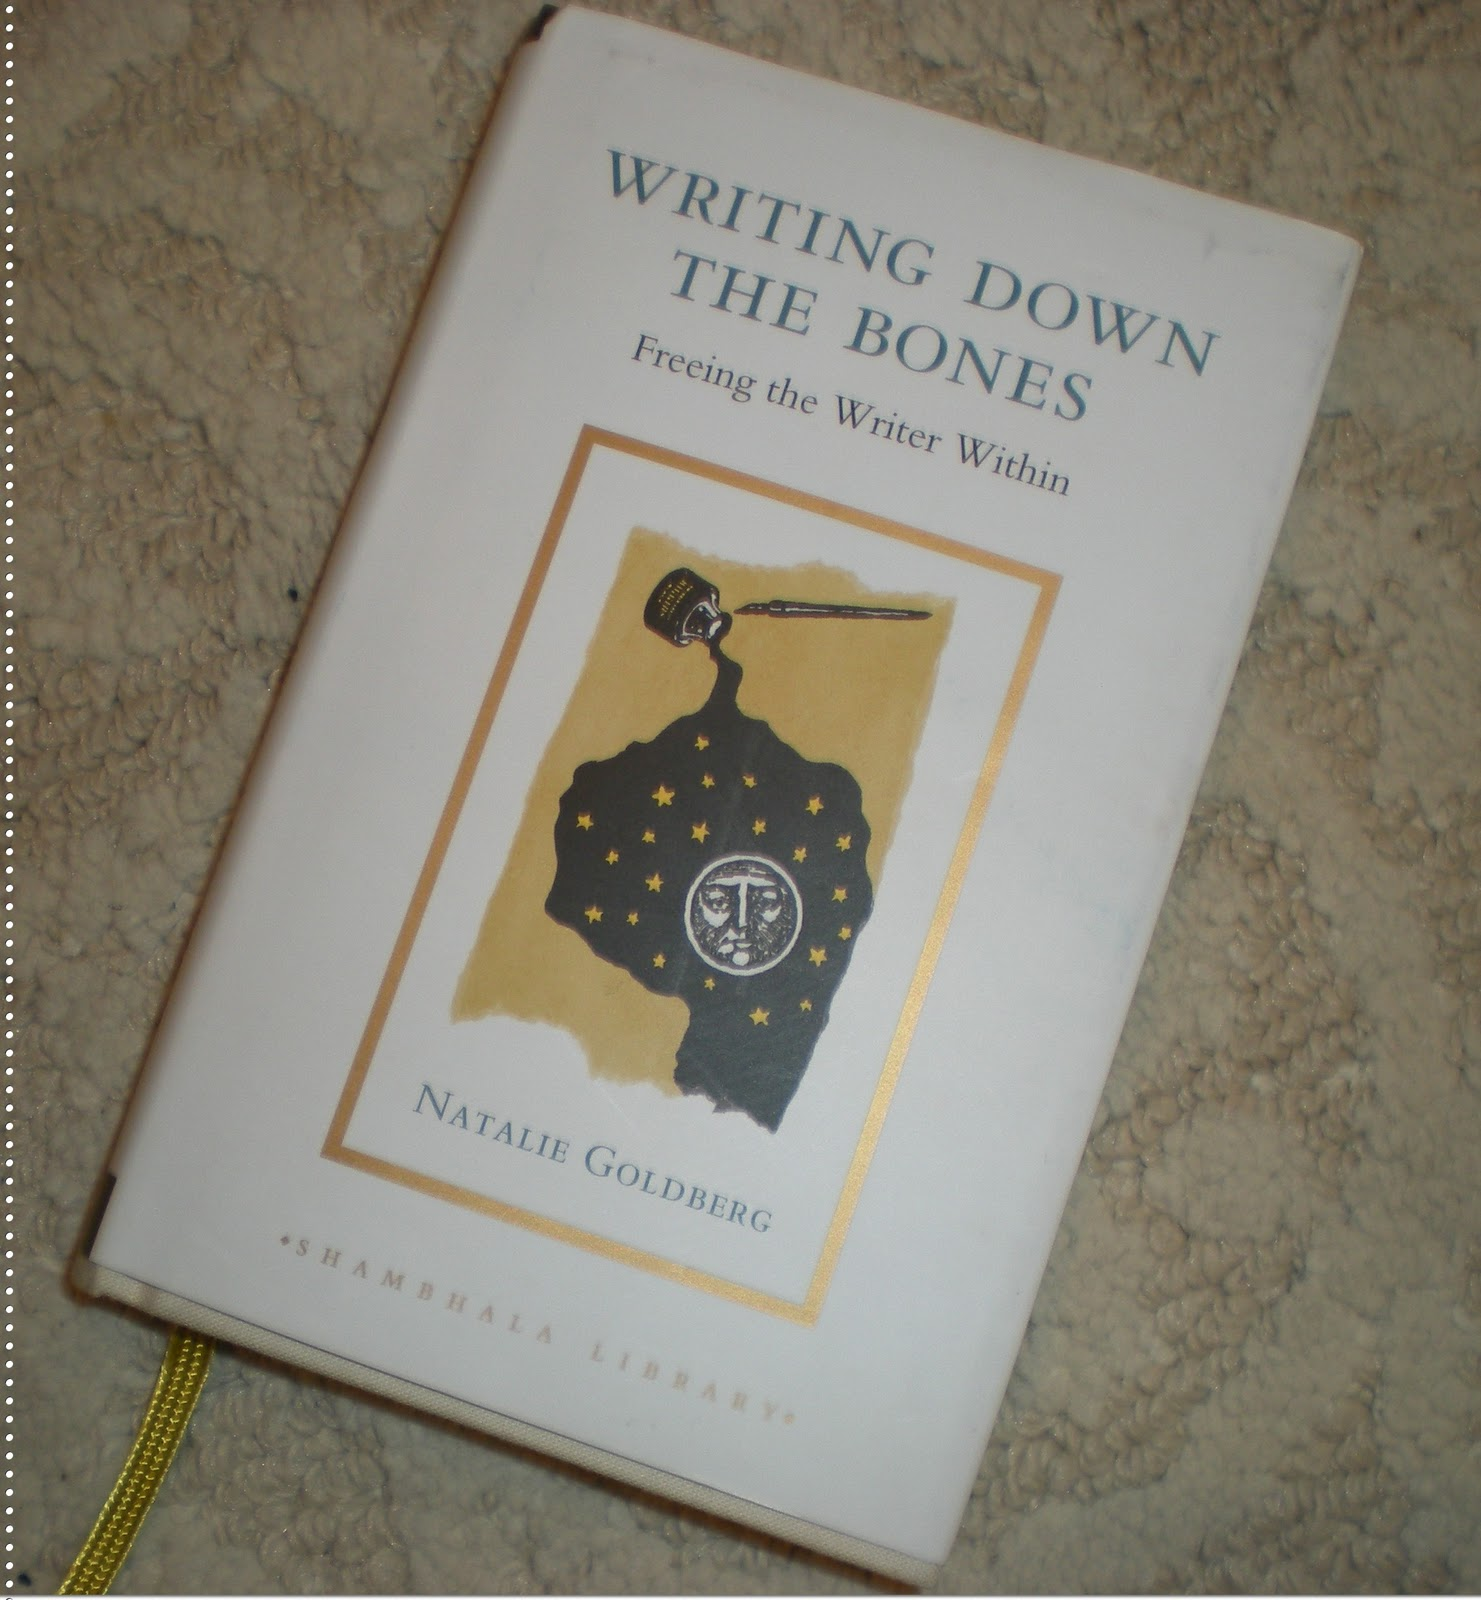 writing down the bones Writing down the bones by natalie goldberg, 9781590307946, available at book depository with free delivery worldwide.